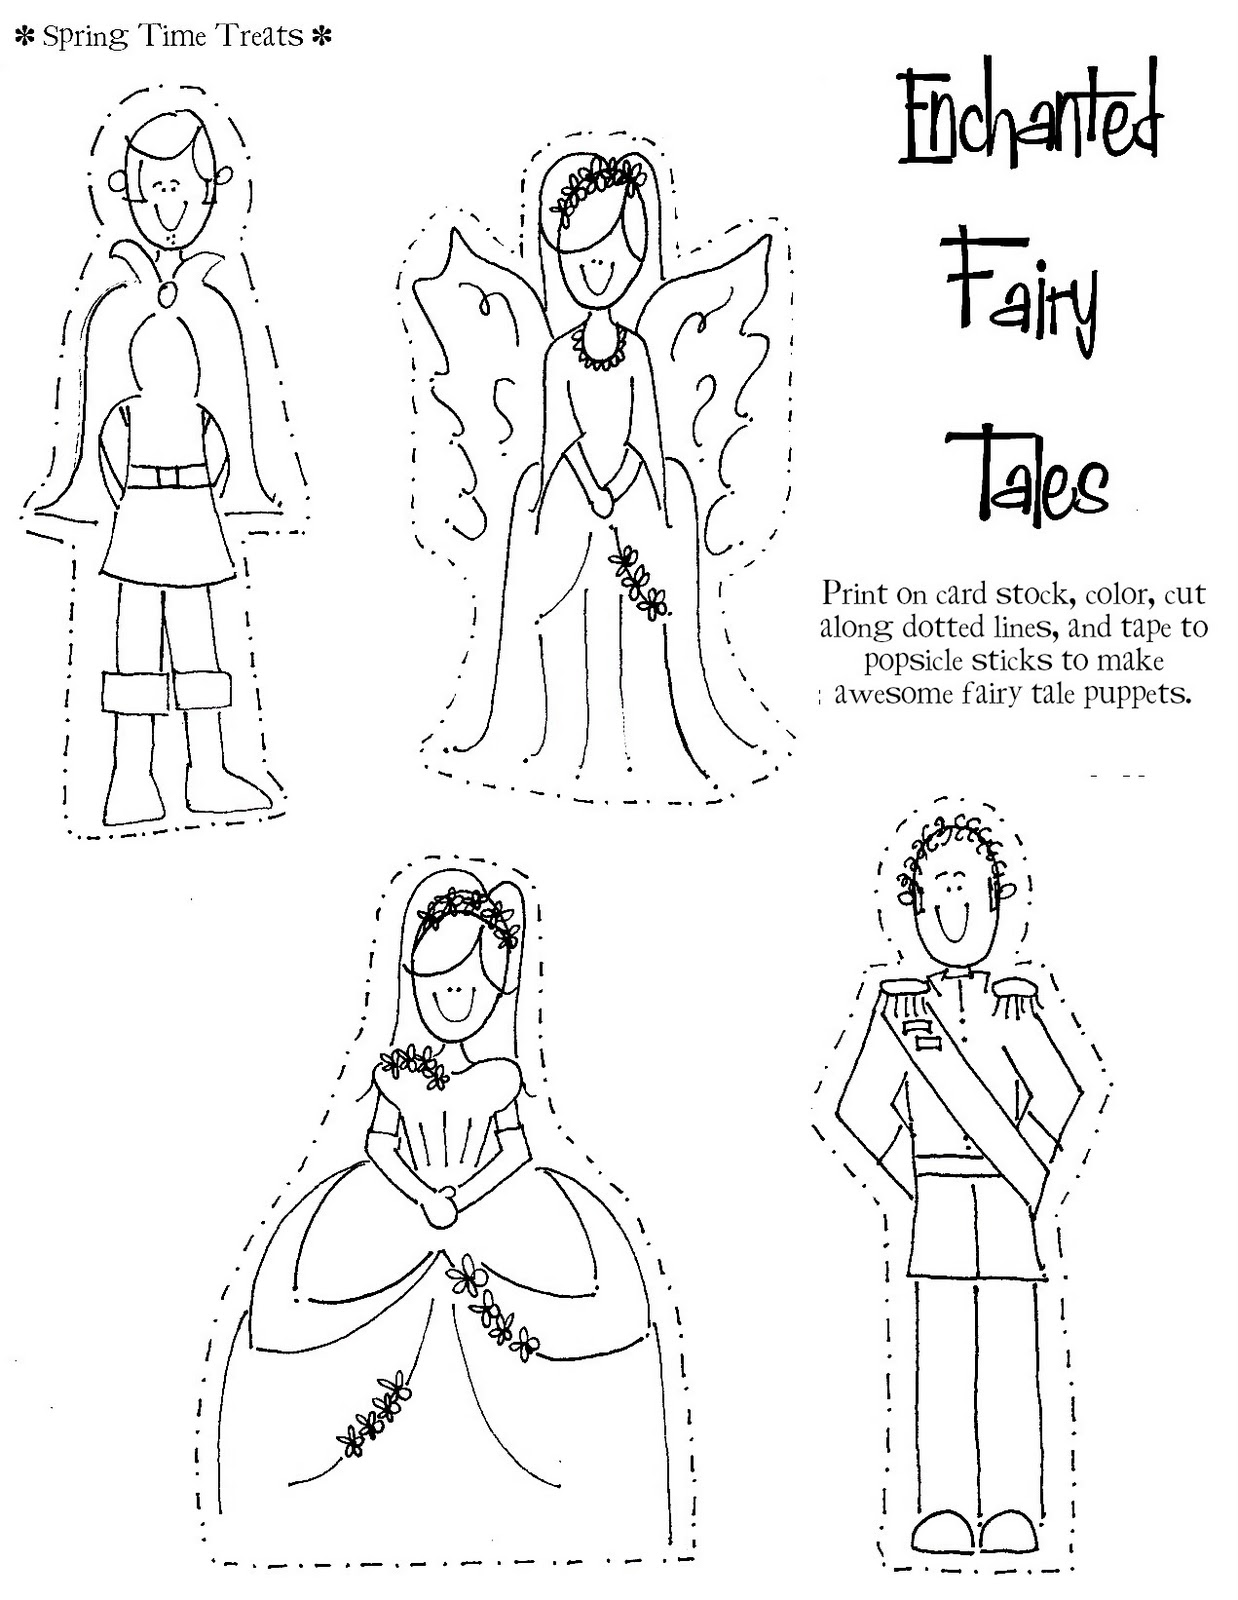 Spring Time Treats: paper dolls / puppets